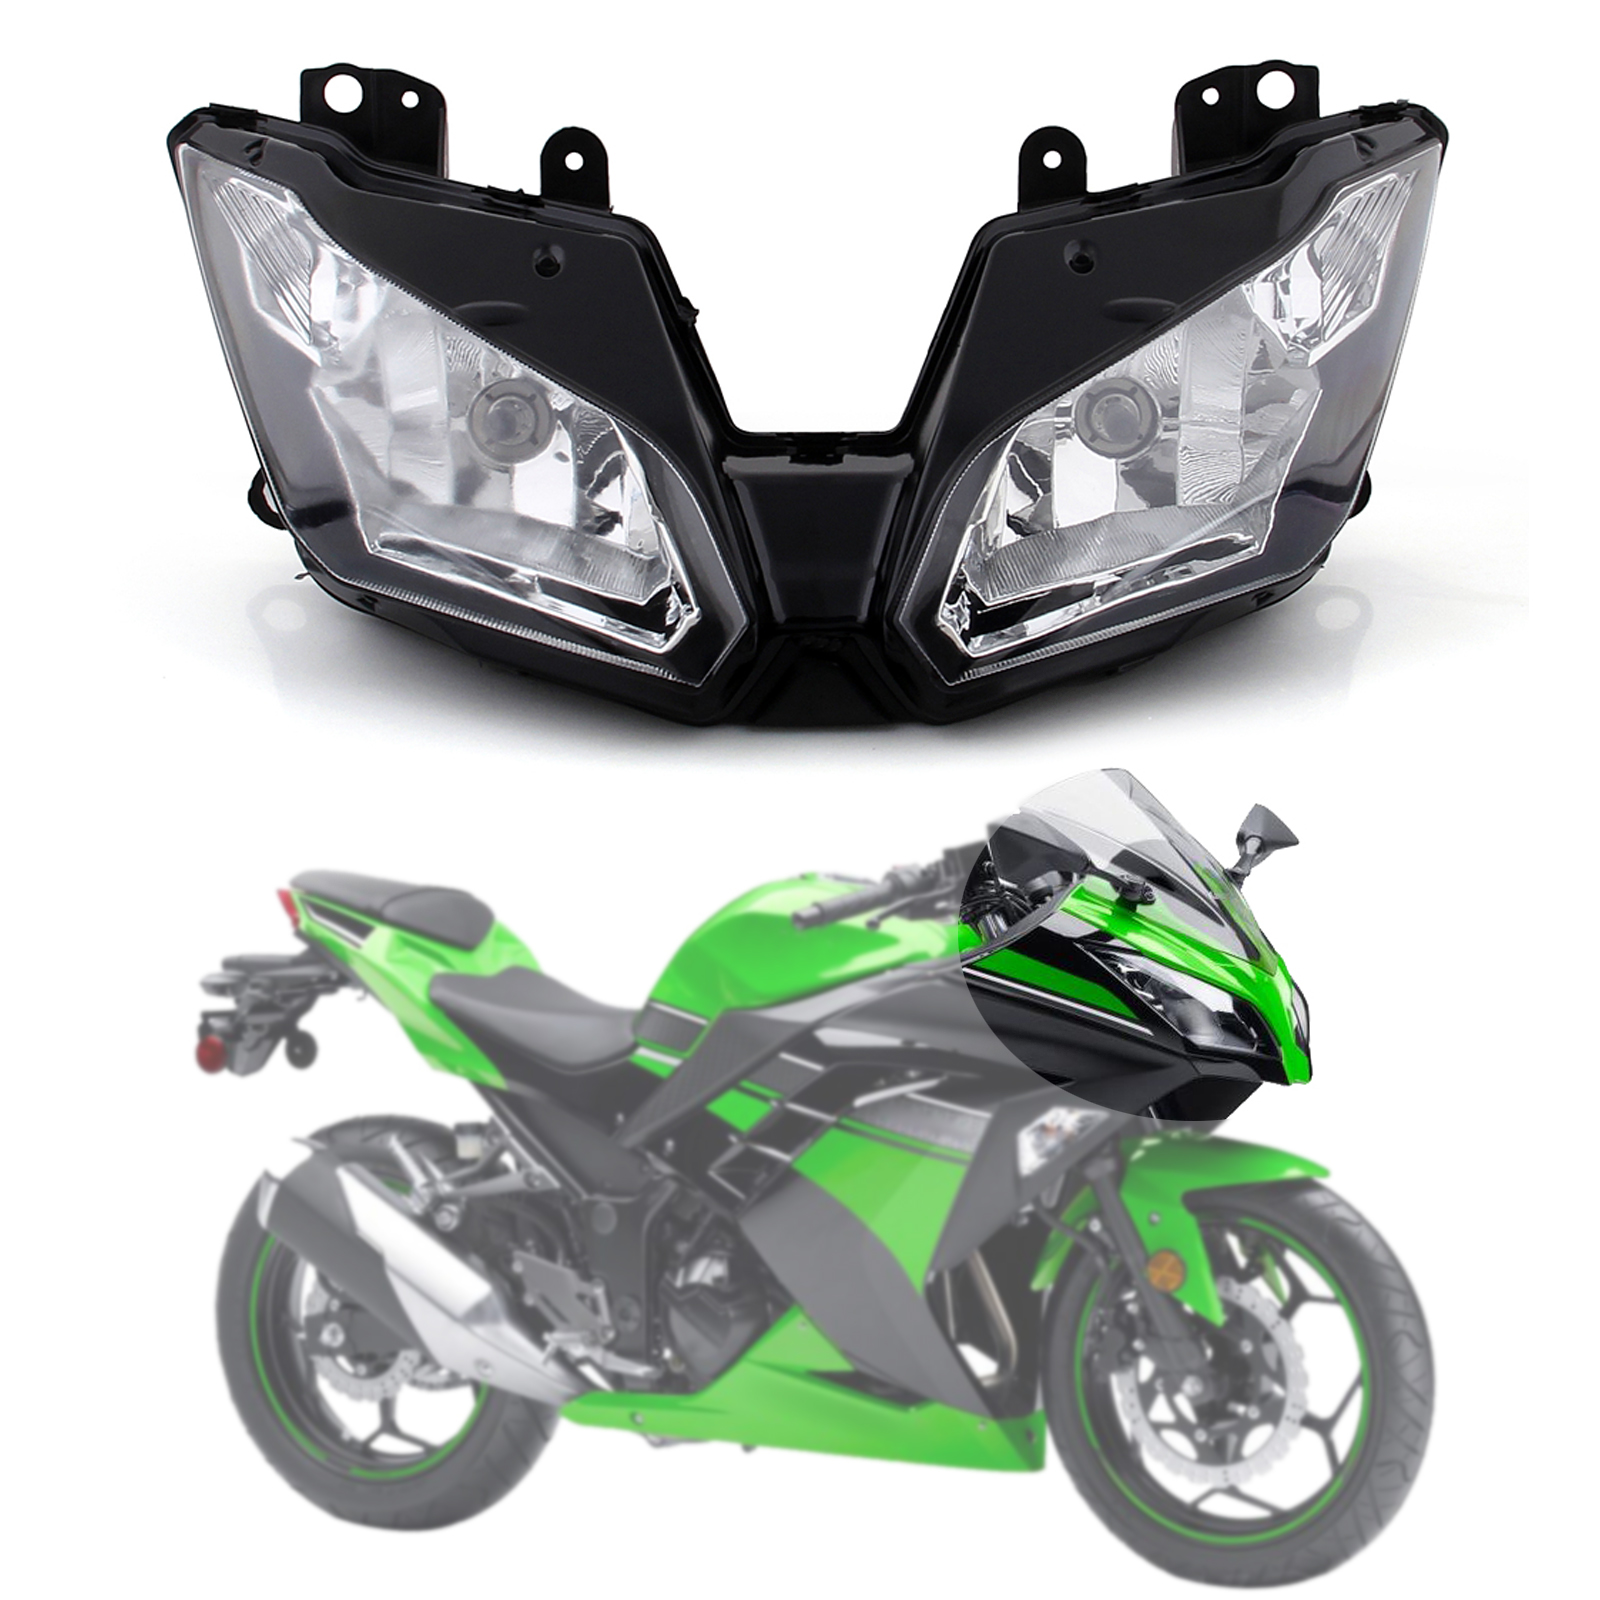 Motor Front Headlight Head Lamp Assembly For Kawasaki Ninja 300 EX300 2013-2017